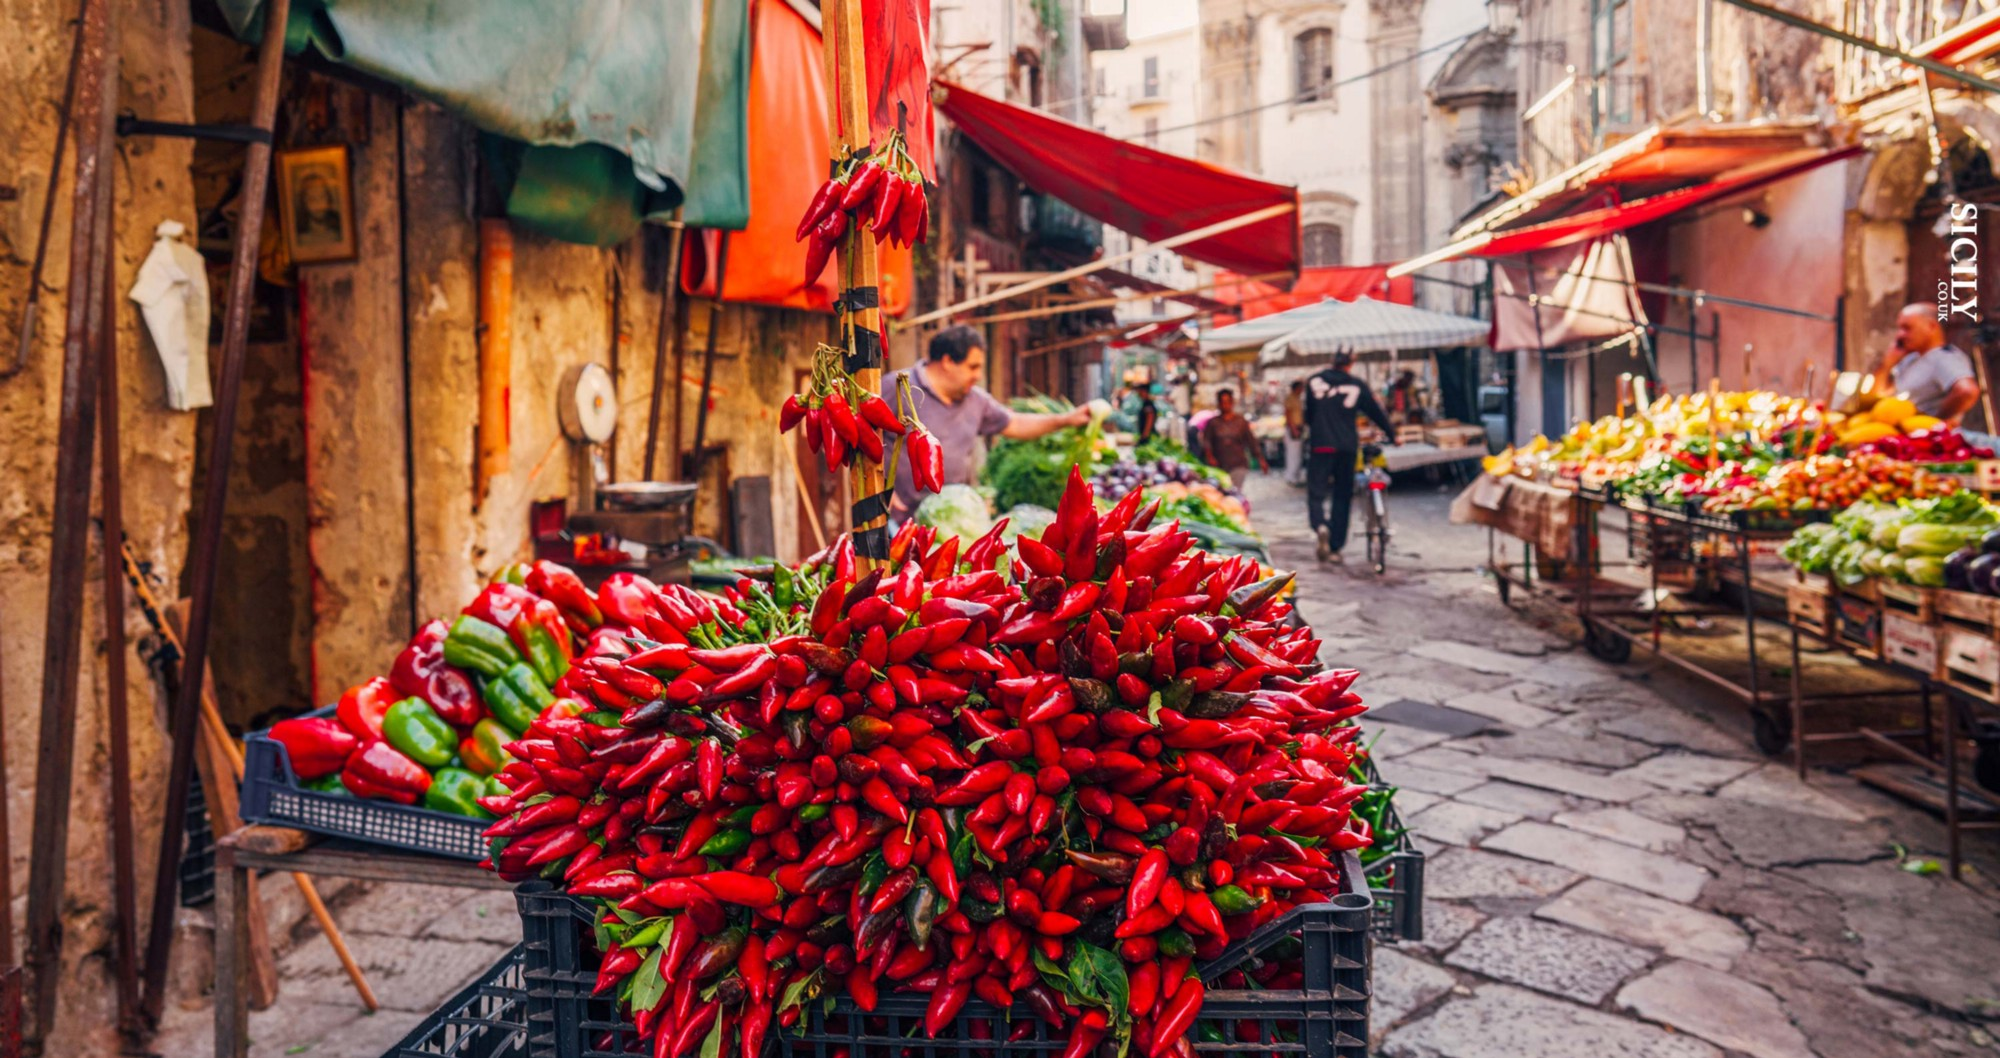 sicily and food and culture - photo#4